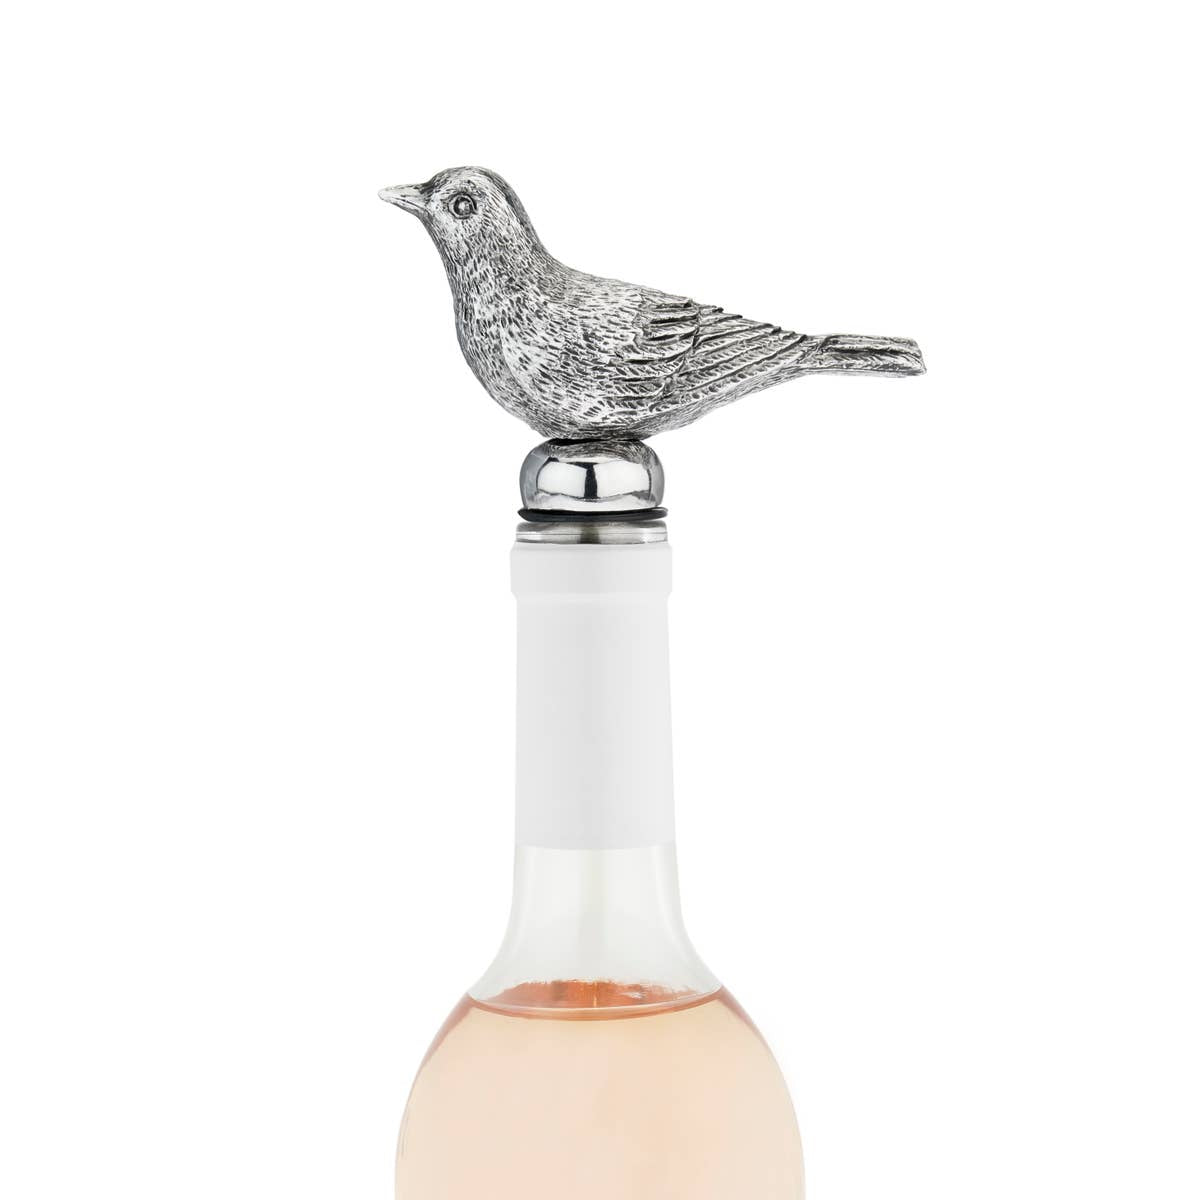 Woodland Bird Bottle Stopper